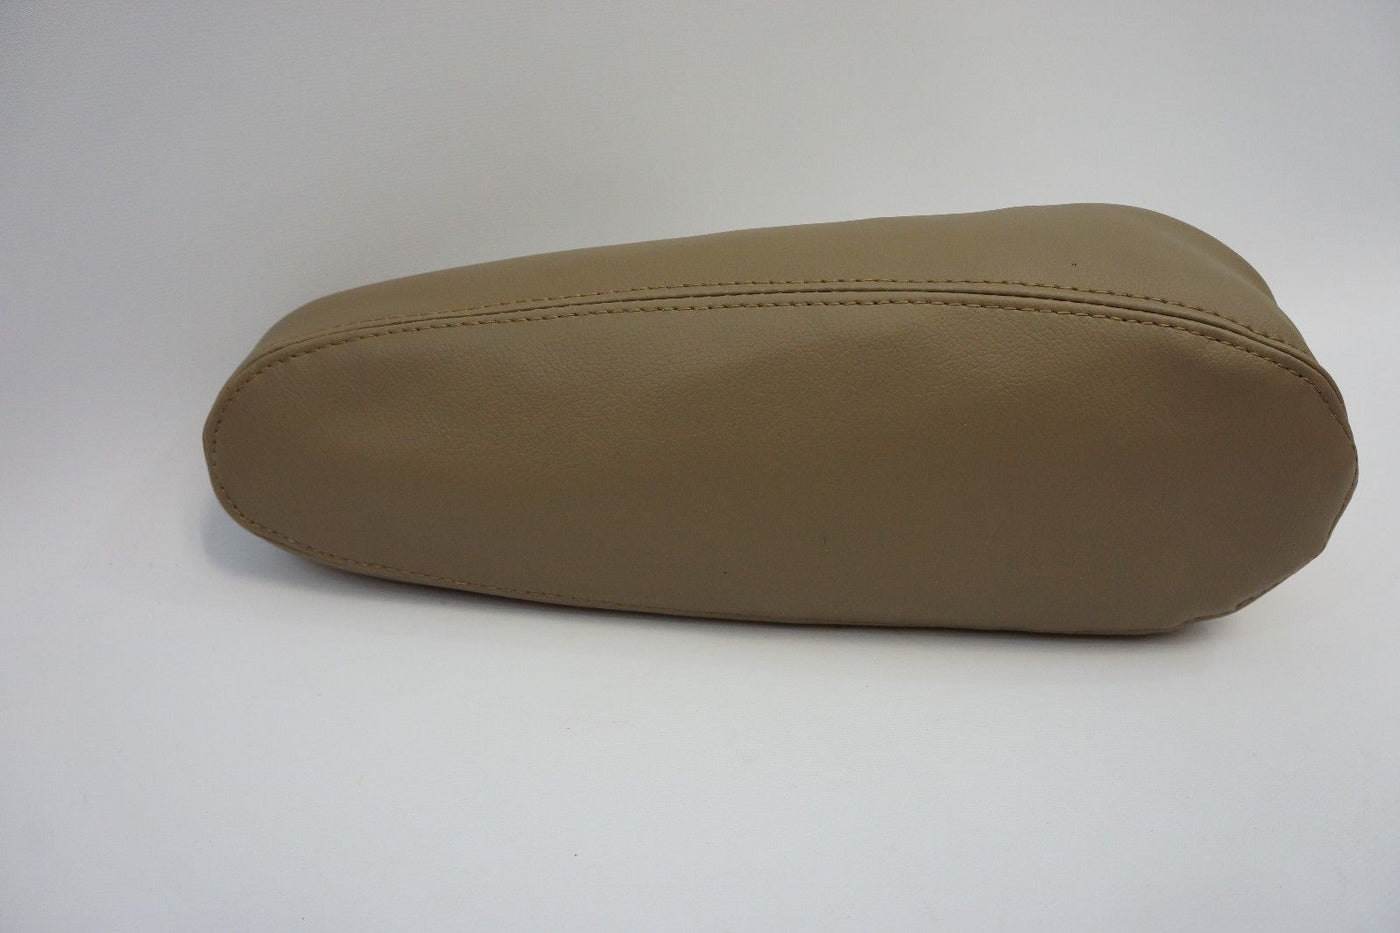 ... 2003 To 2006 Chevy Silverado&GMC Sierra Upholstery Top Bottom Leather  Seat cover - Auto Seat Replacement ...